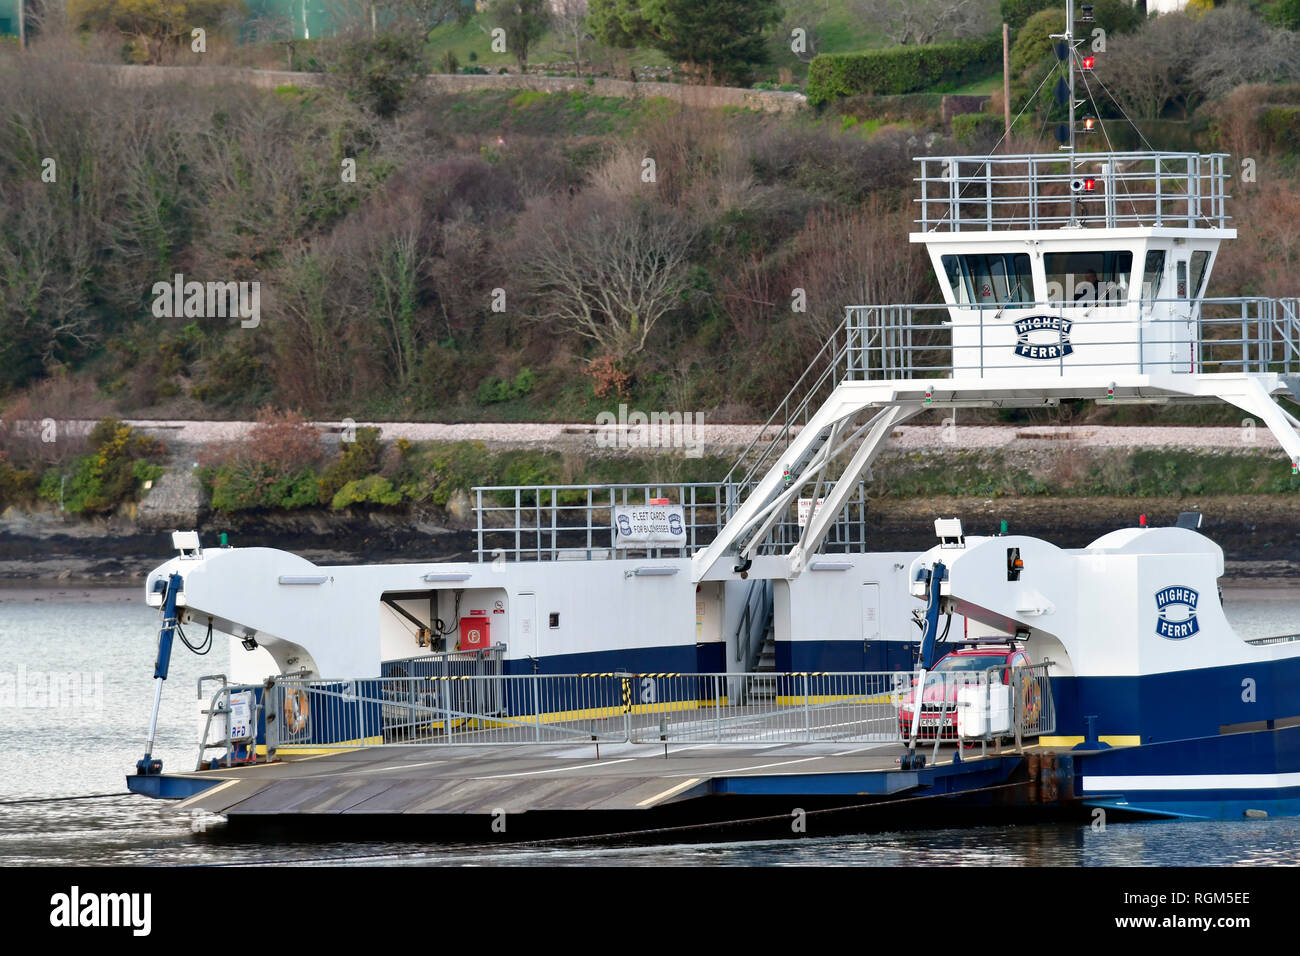 Dartmouth car and van Higher Ferry crossing the river dart in January 2019. A toll fee is paid for crossing. Picture Credit;Robert Timoney/AlamyStock/ - Stock Image